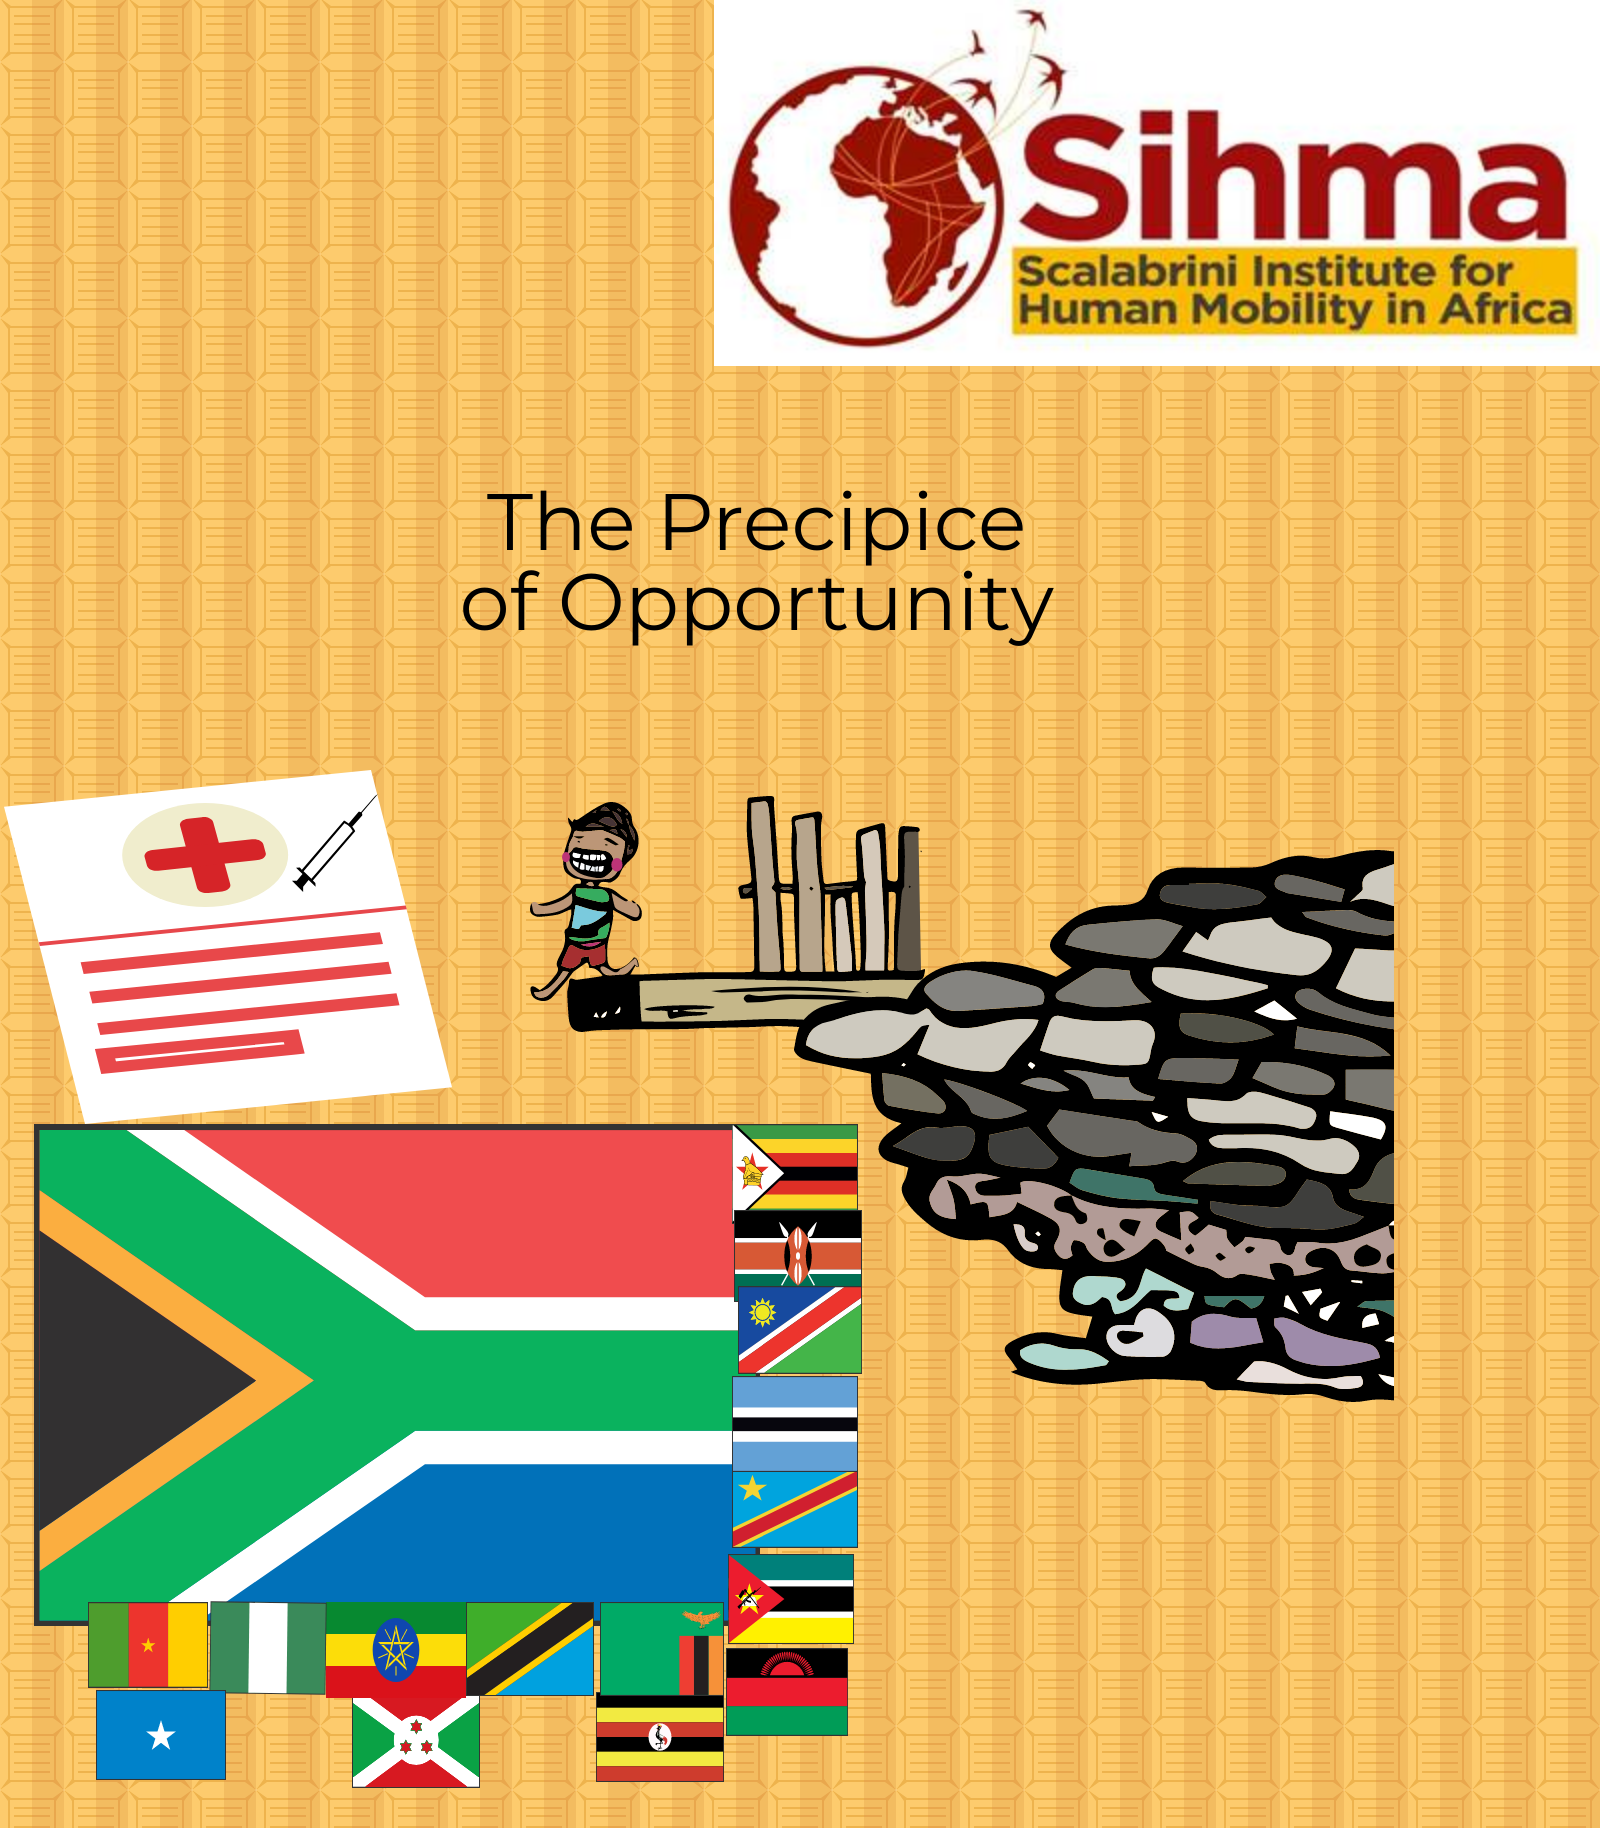 https://sihma.org.za/photos/shares/blog precipice of opportunity.png